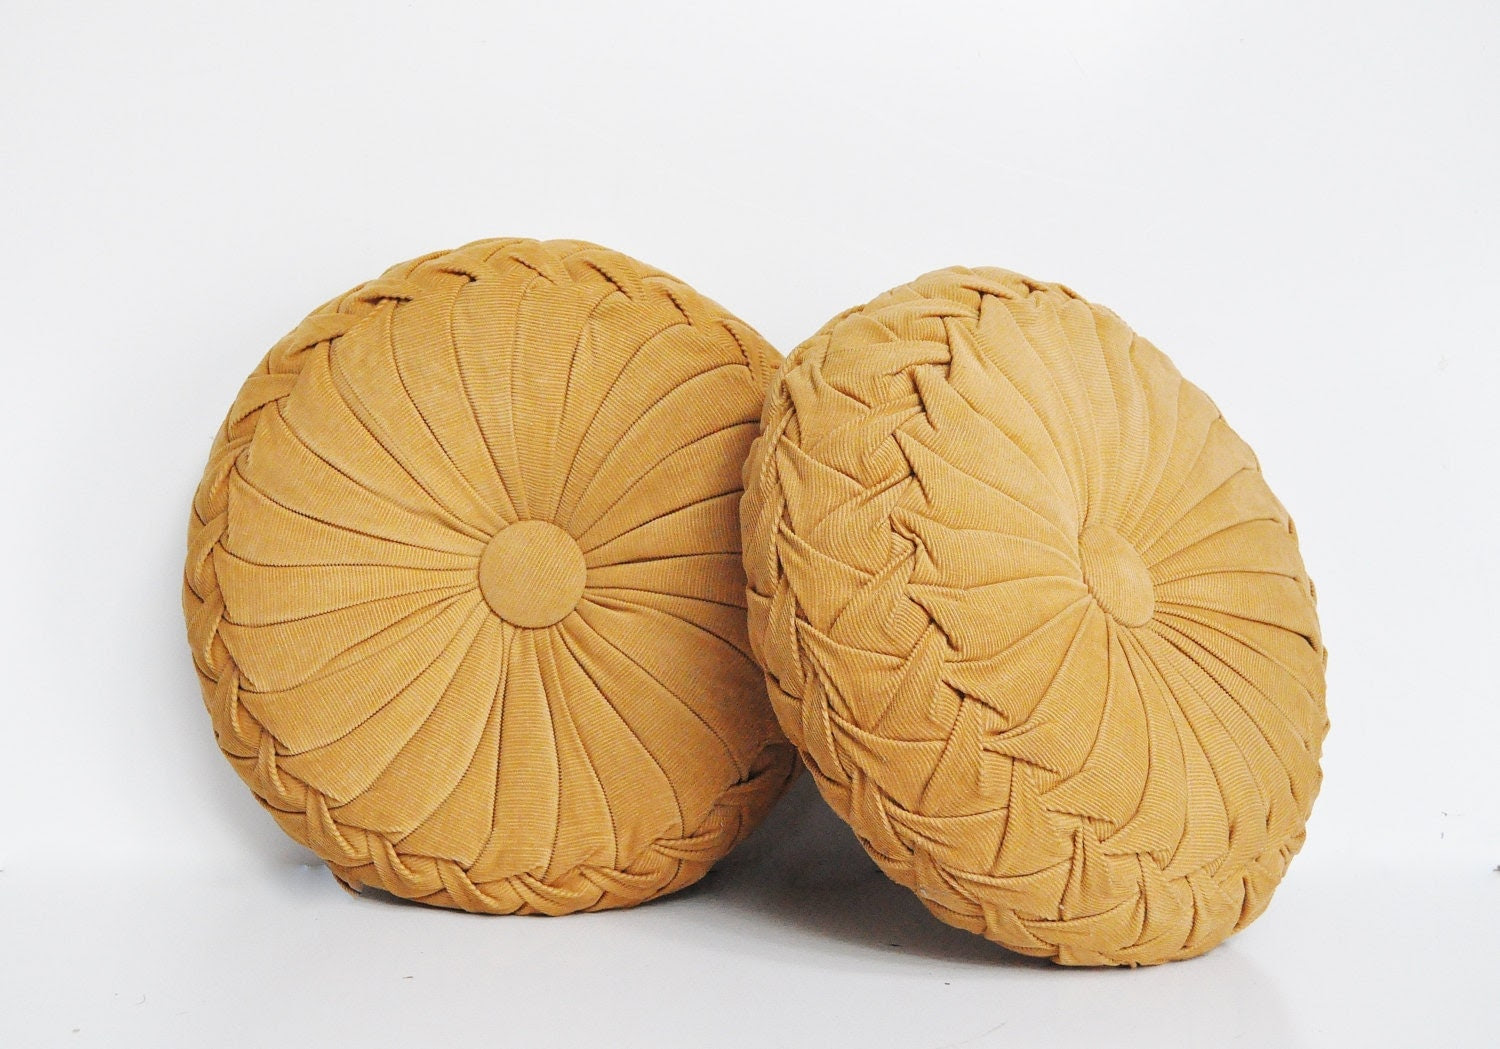 Pair of Vintage Smocked Pillows Round Pillows by thewhitepepper